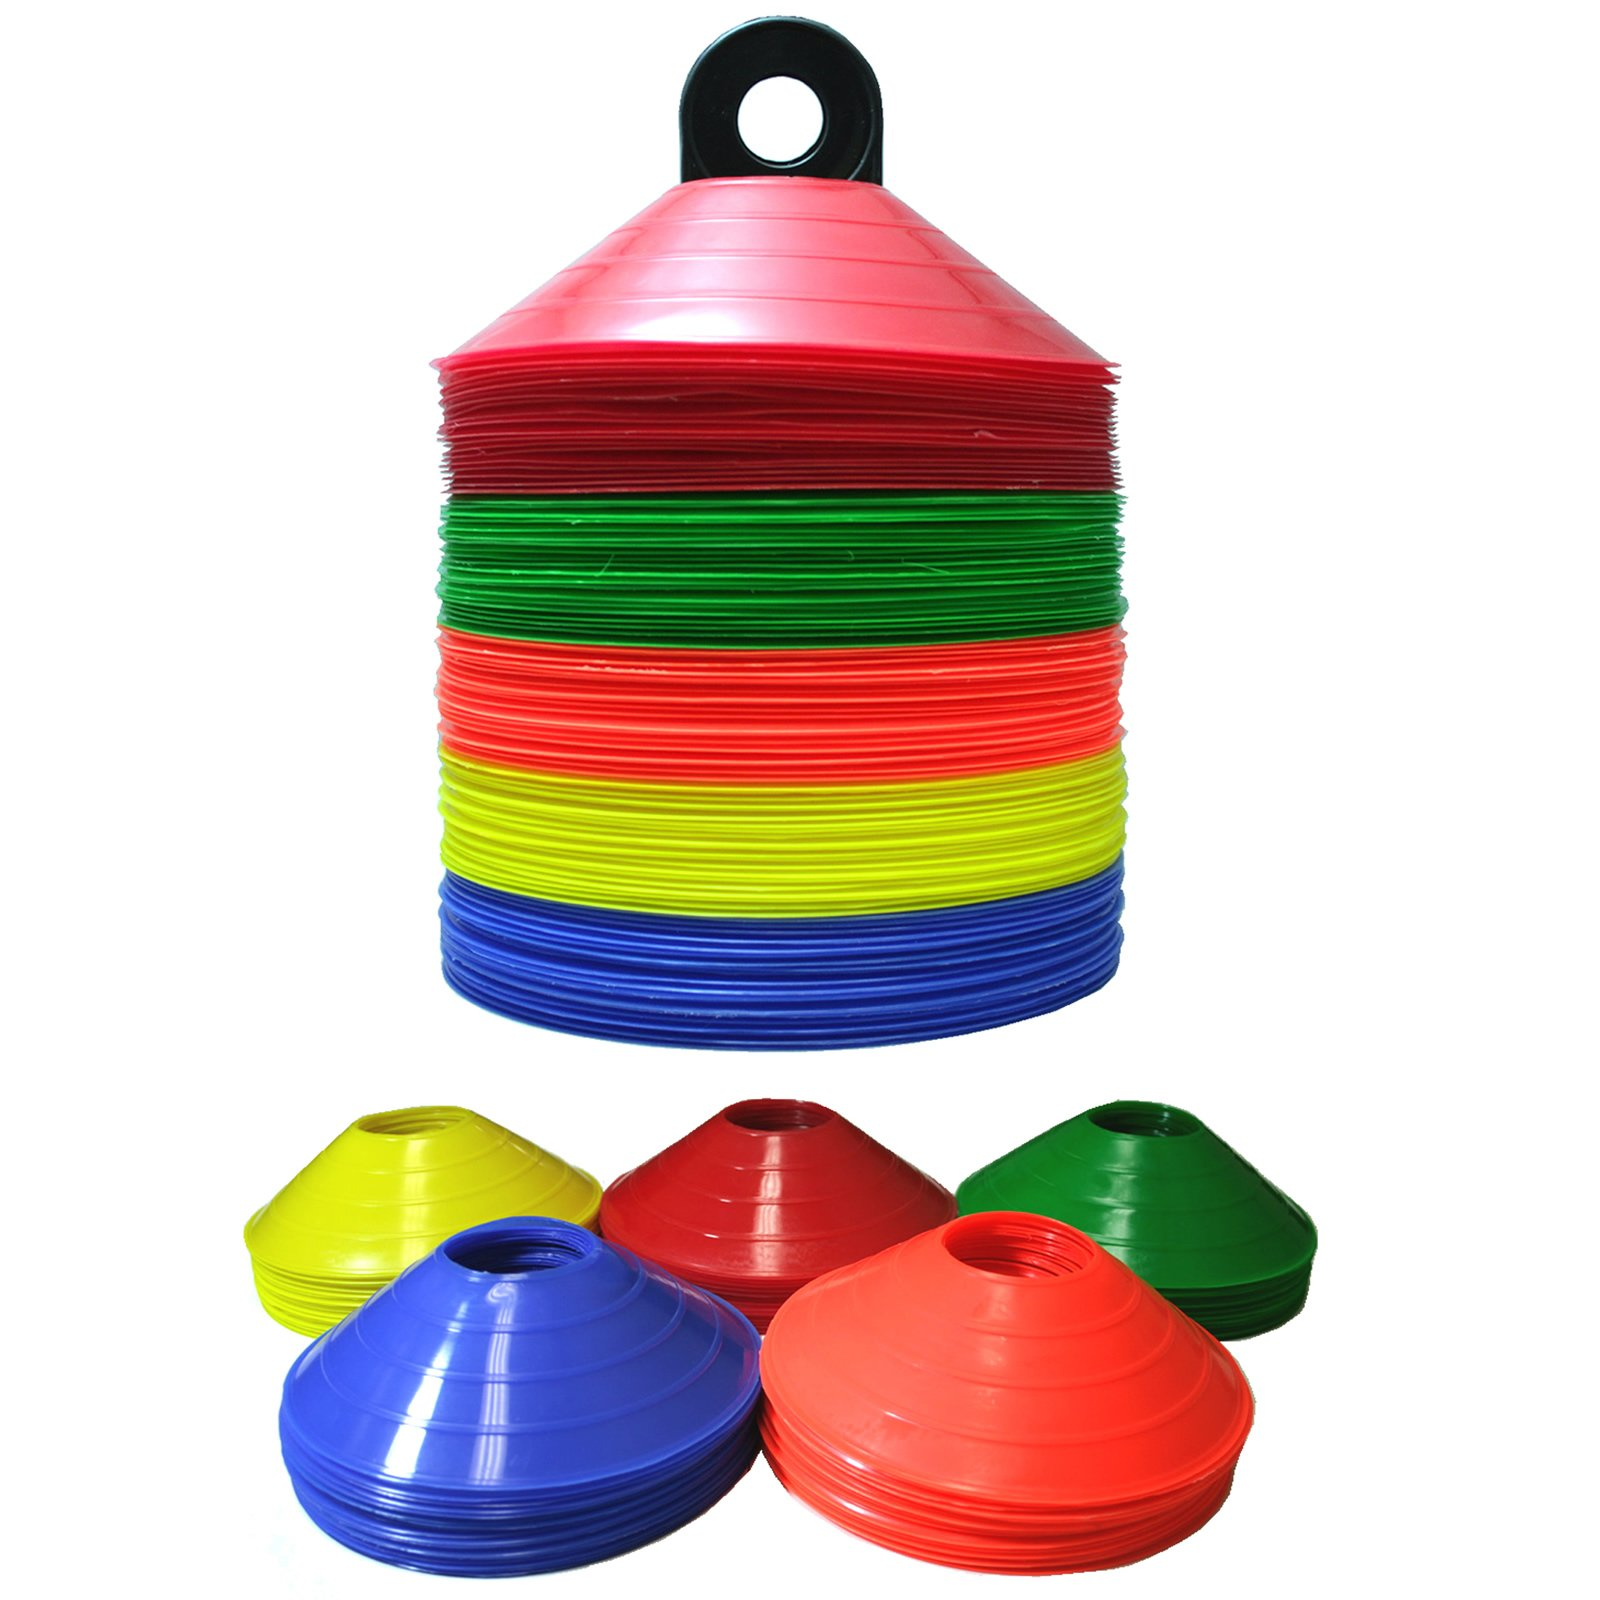 100 Disc Cones Soccer Football Field Marking Coaching Cones - Assorted Colors …